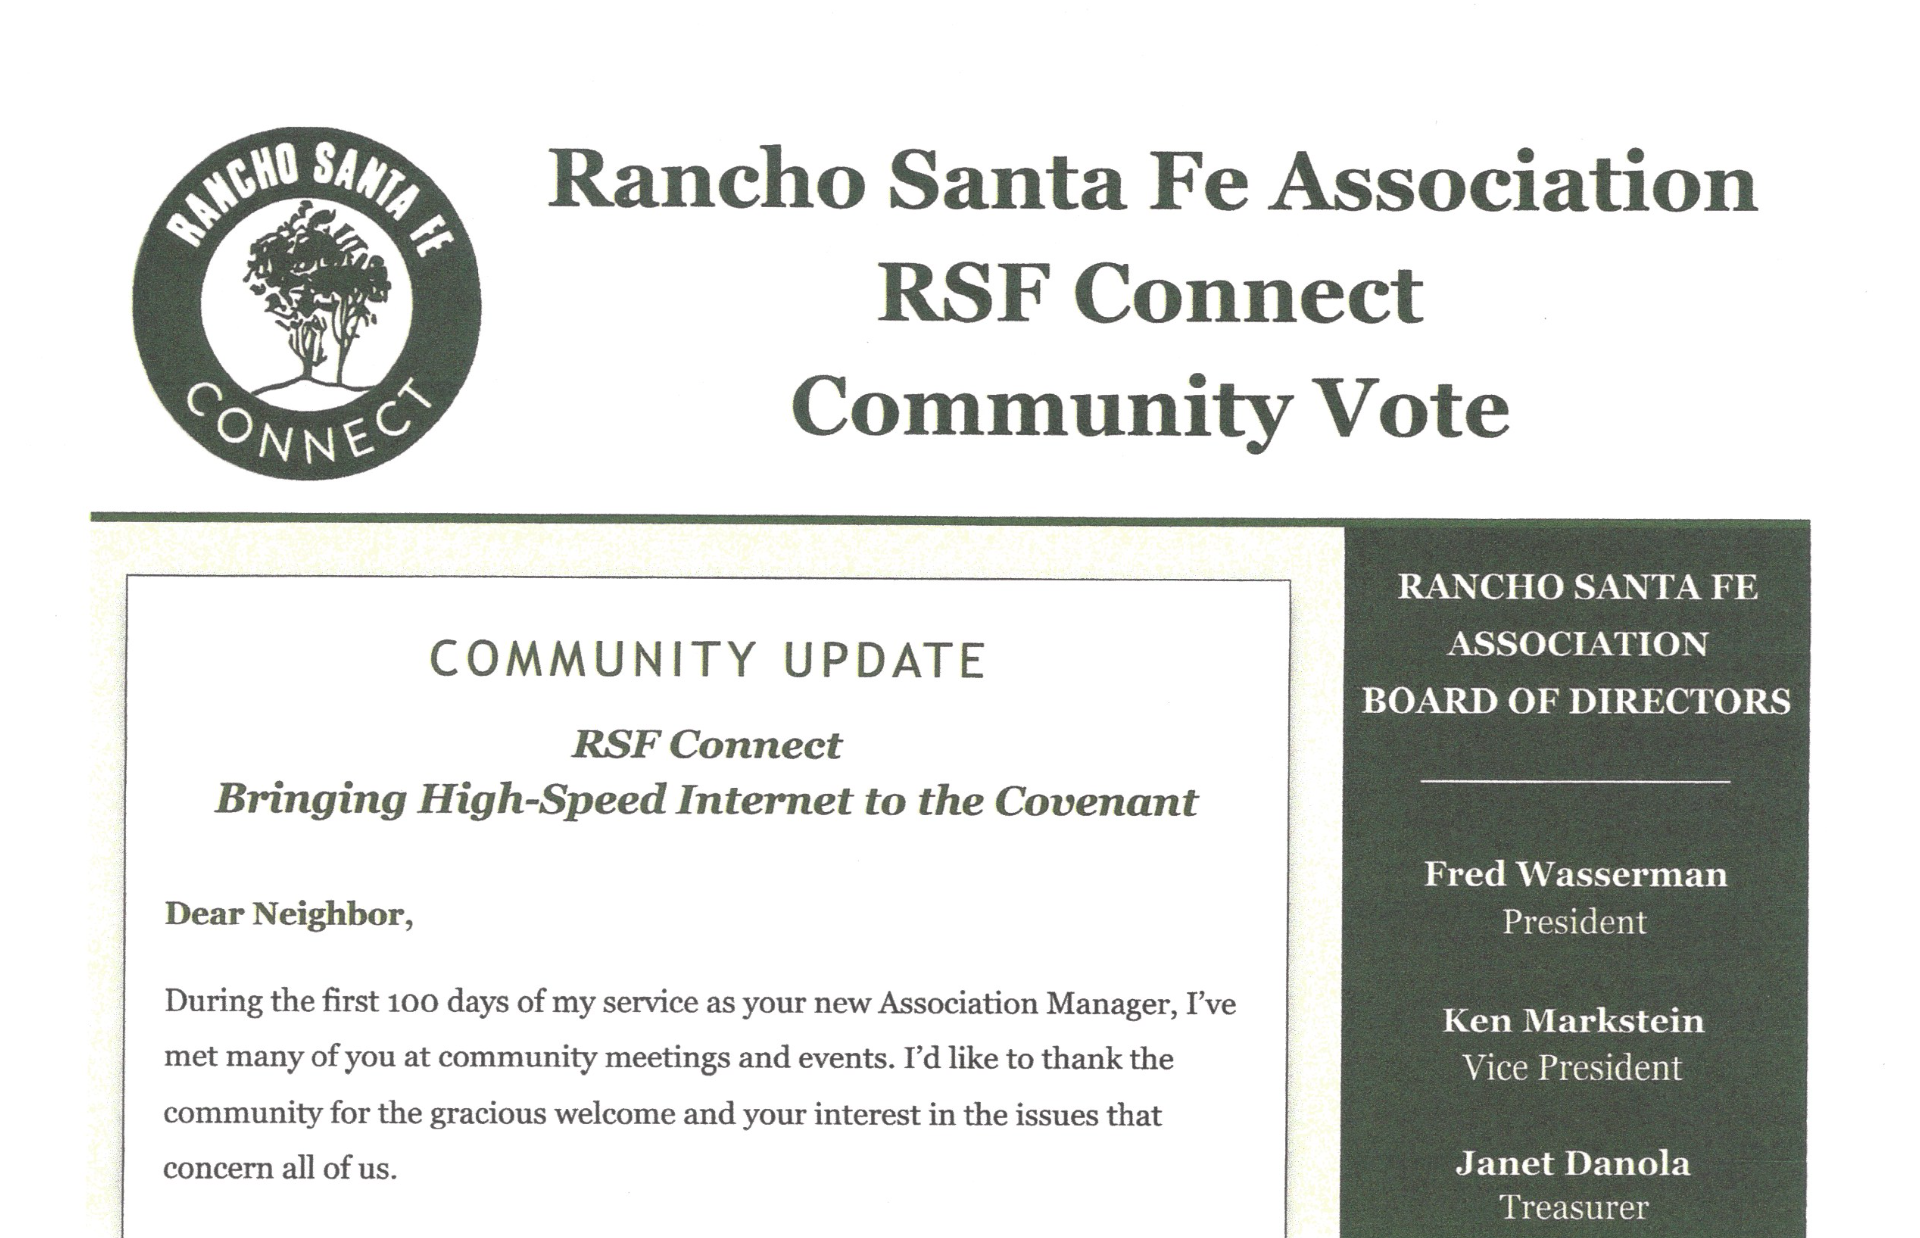 RSF Connect Mailer